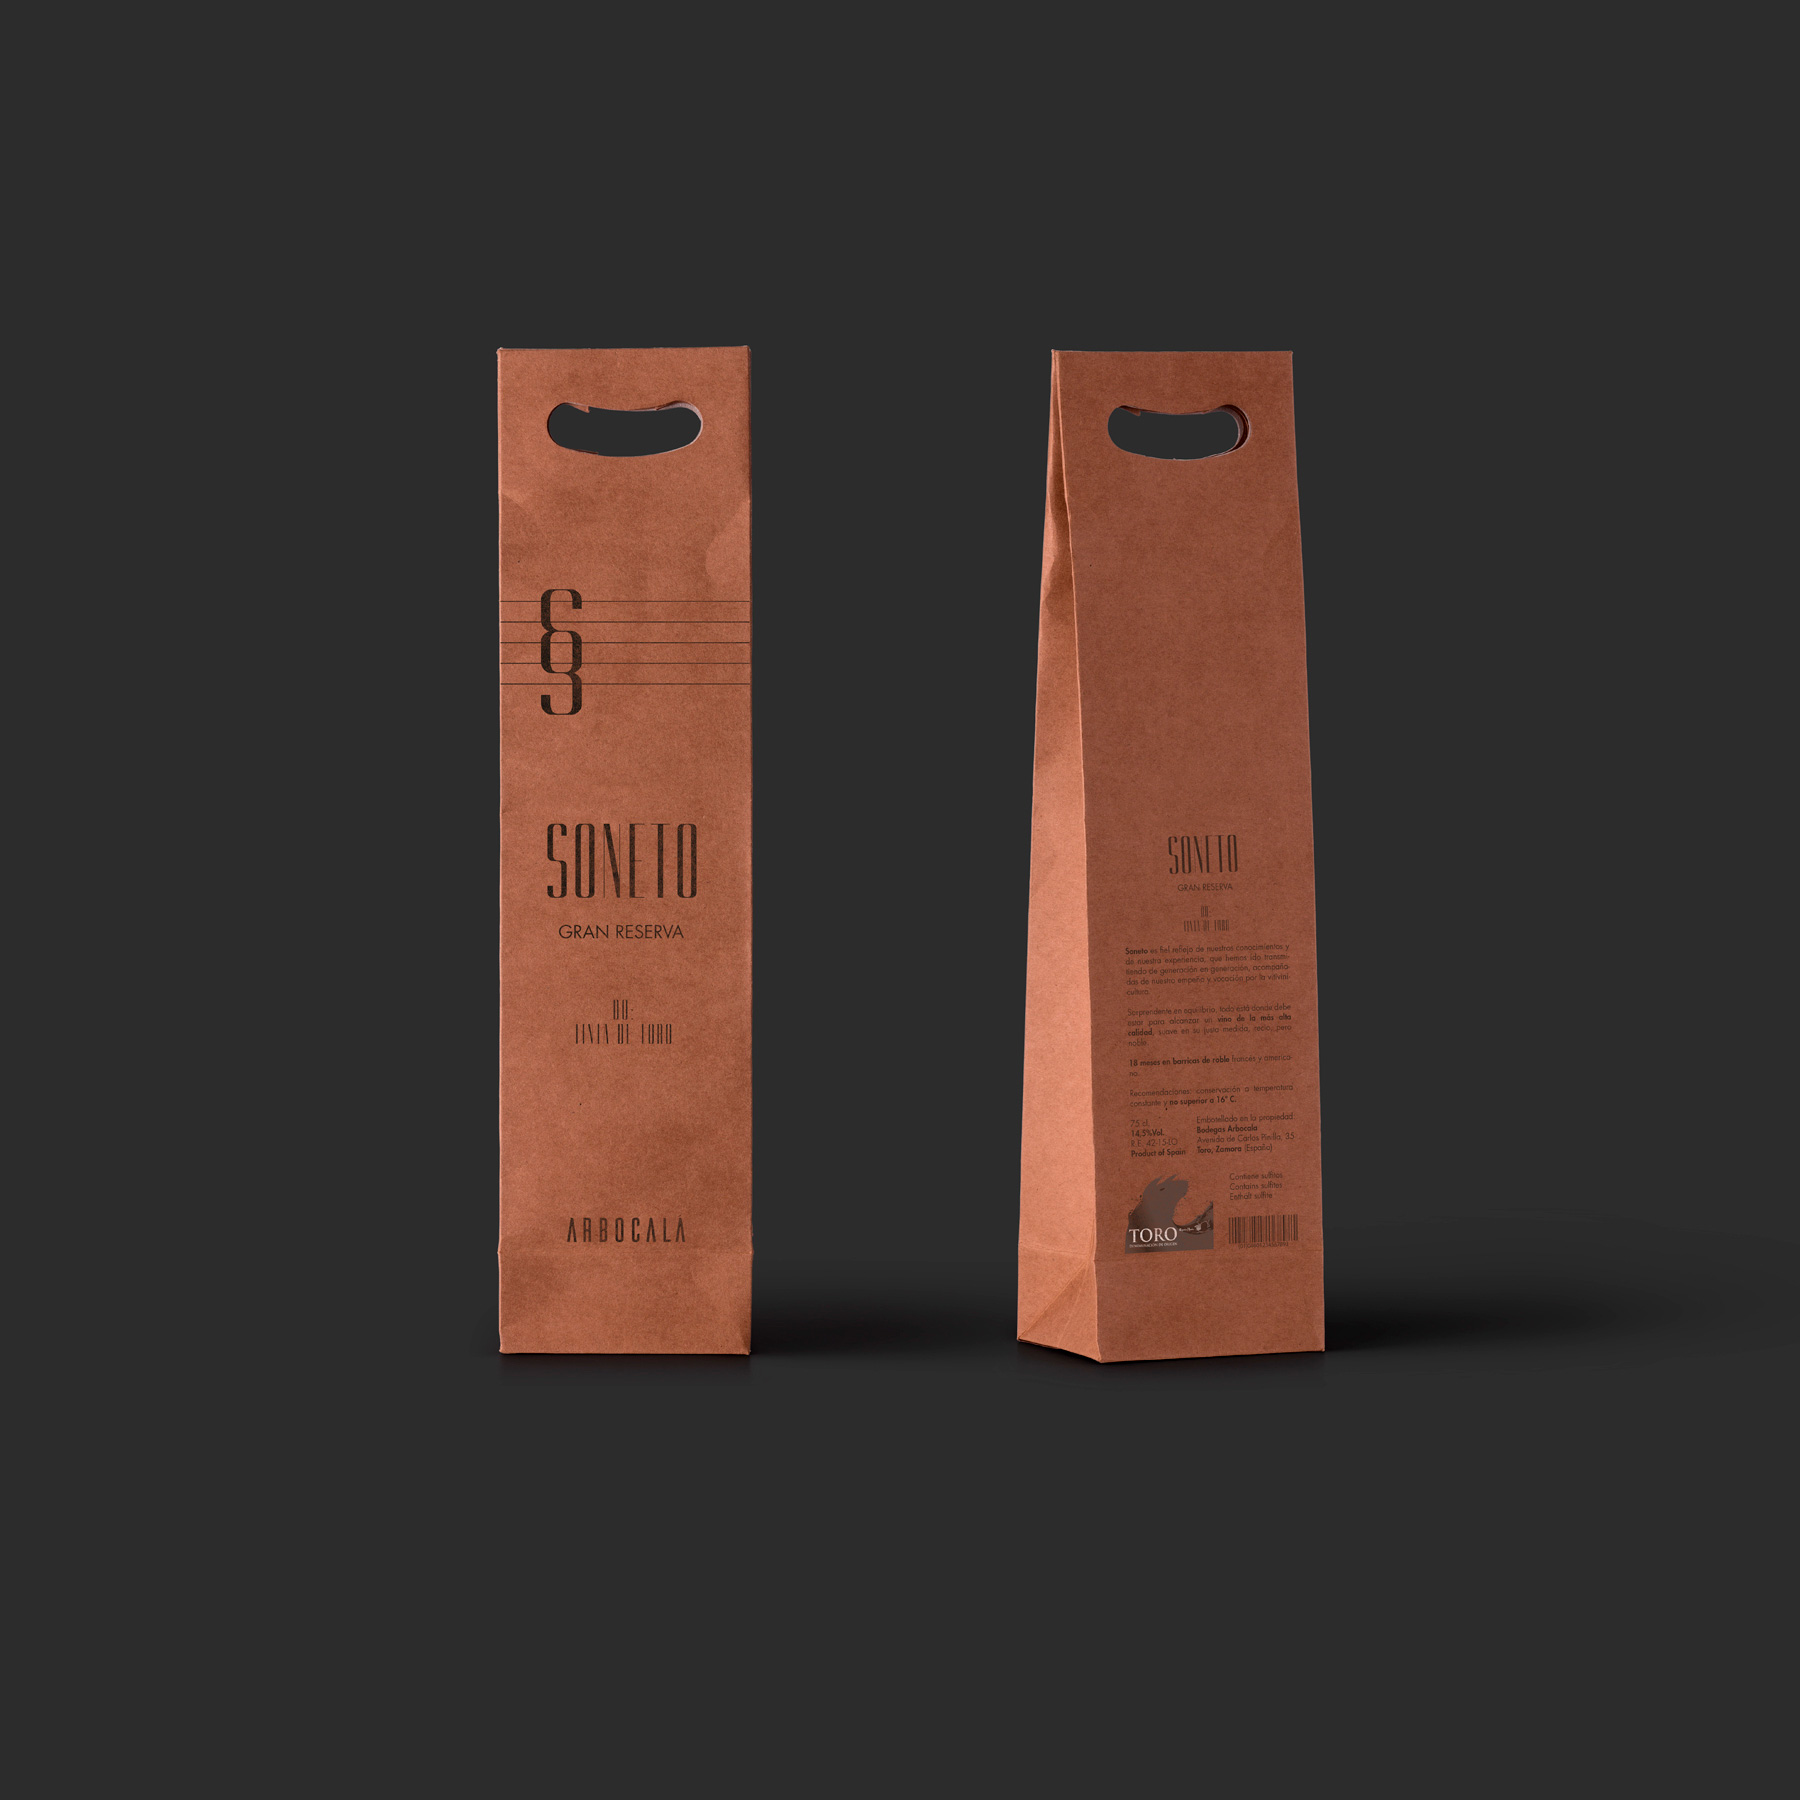 soneto_packaging